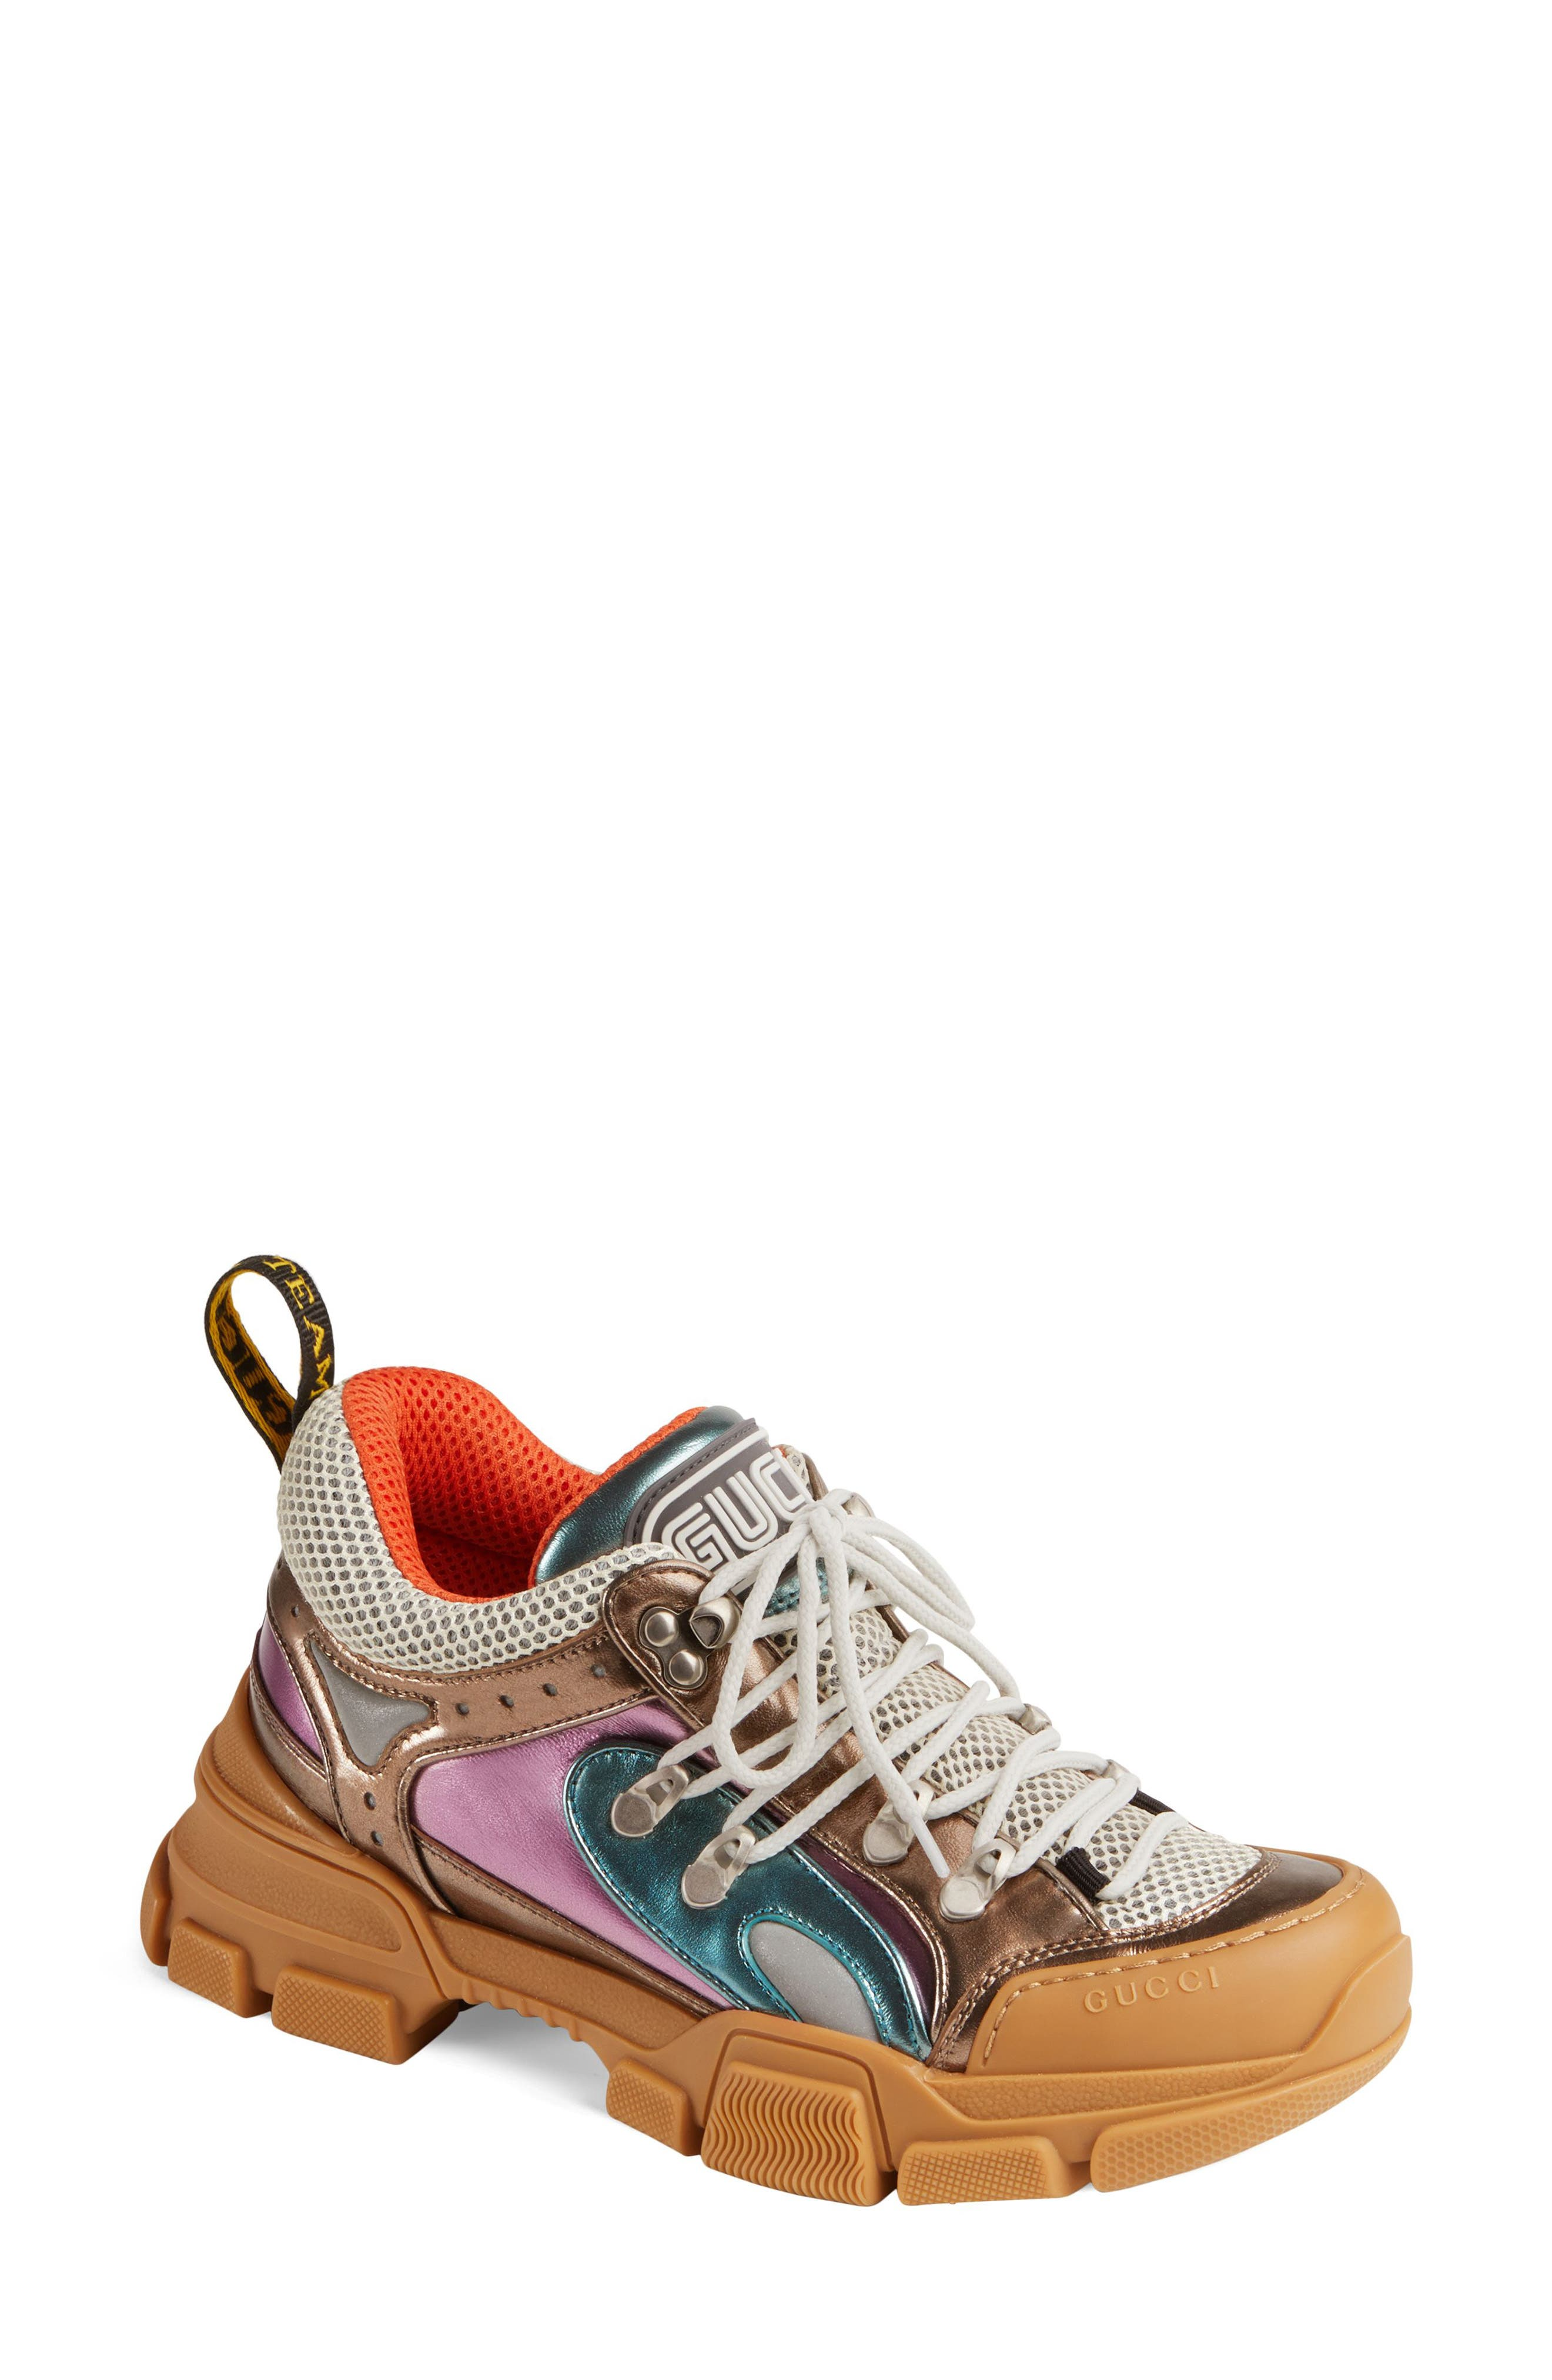 GUCCI, Flashtrek Lace-Up Sneaker, Main thumbnail 1, color, BROWN/ BLUE/ PINK